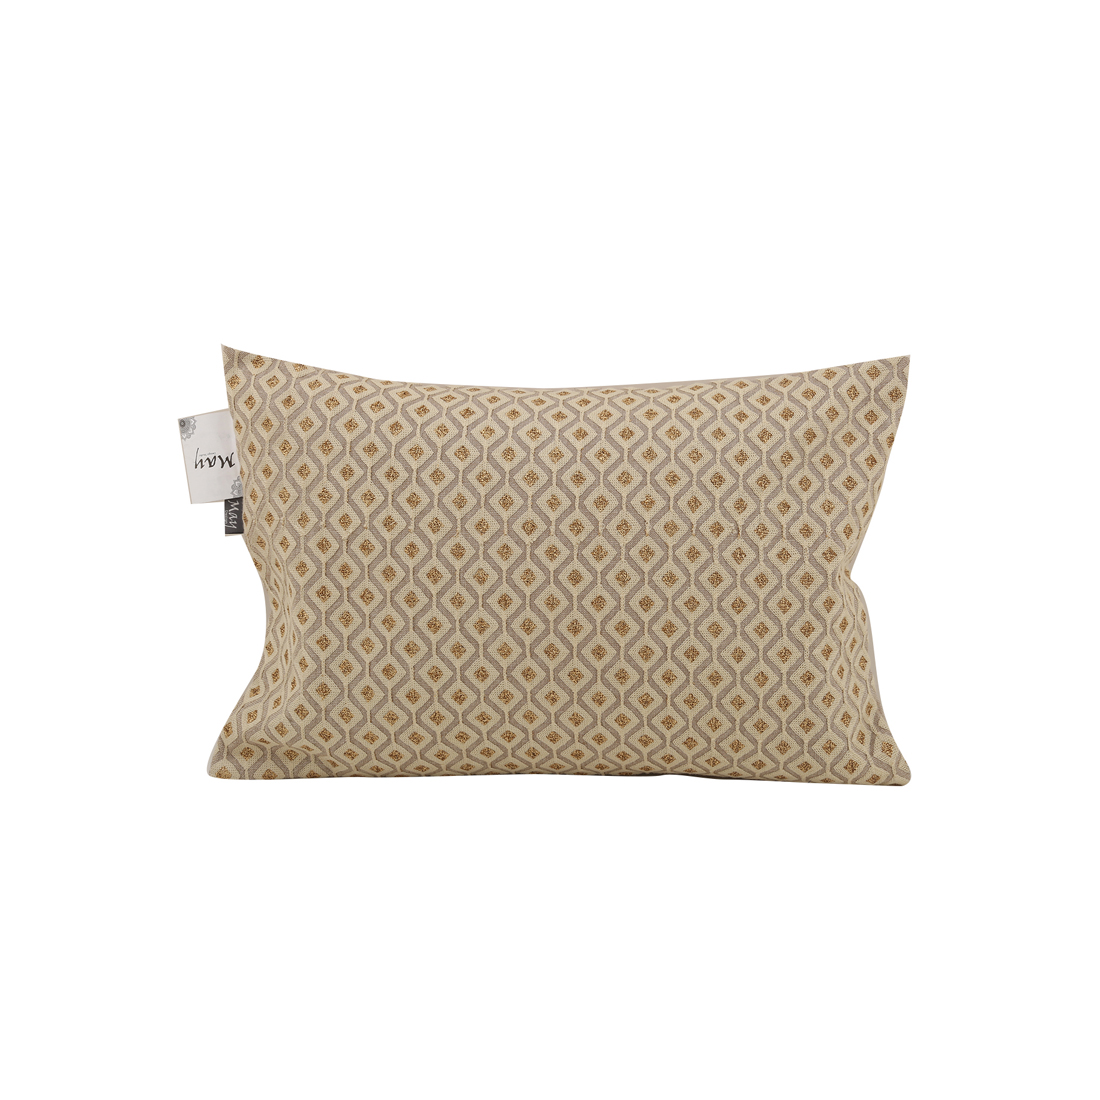 Dimora Beige Gold Cotton Cushion Covers in Beige Gold Colour by Living Essence